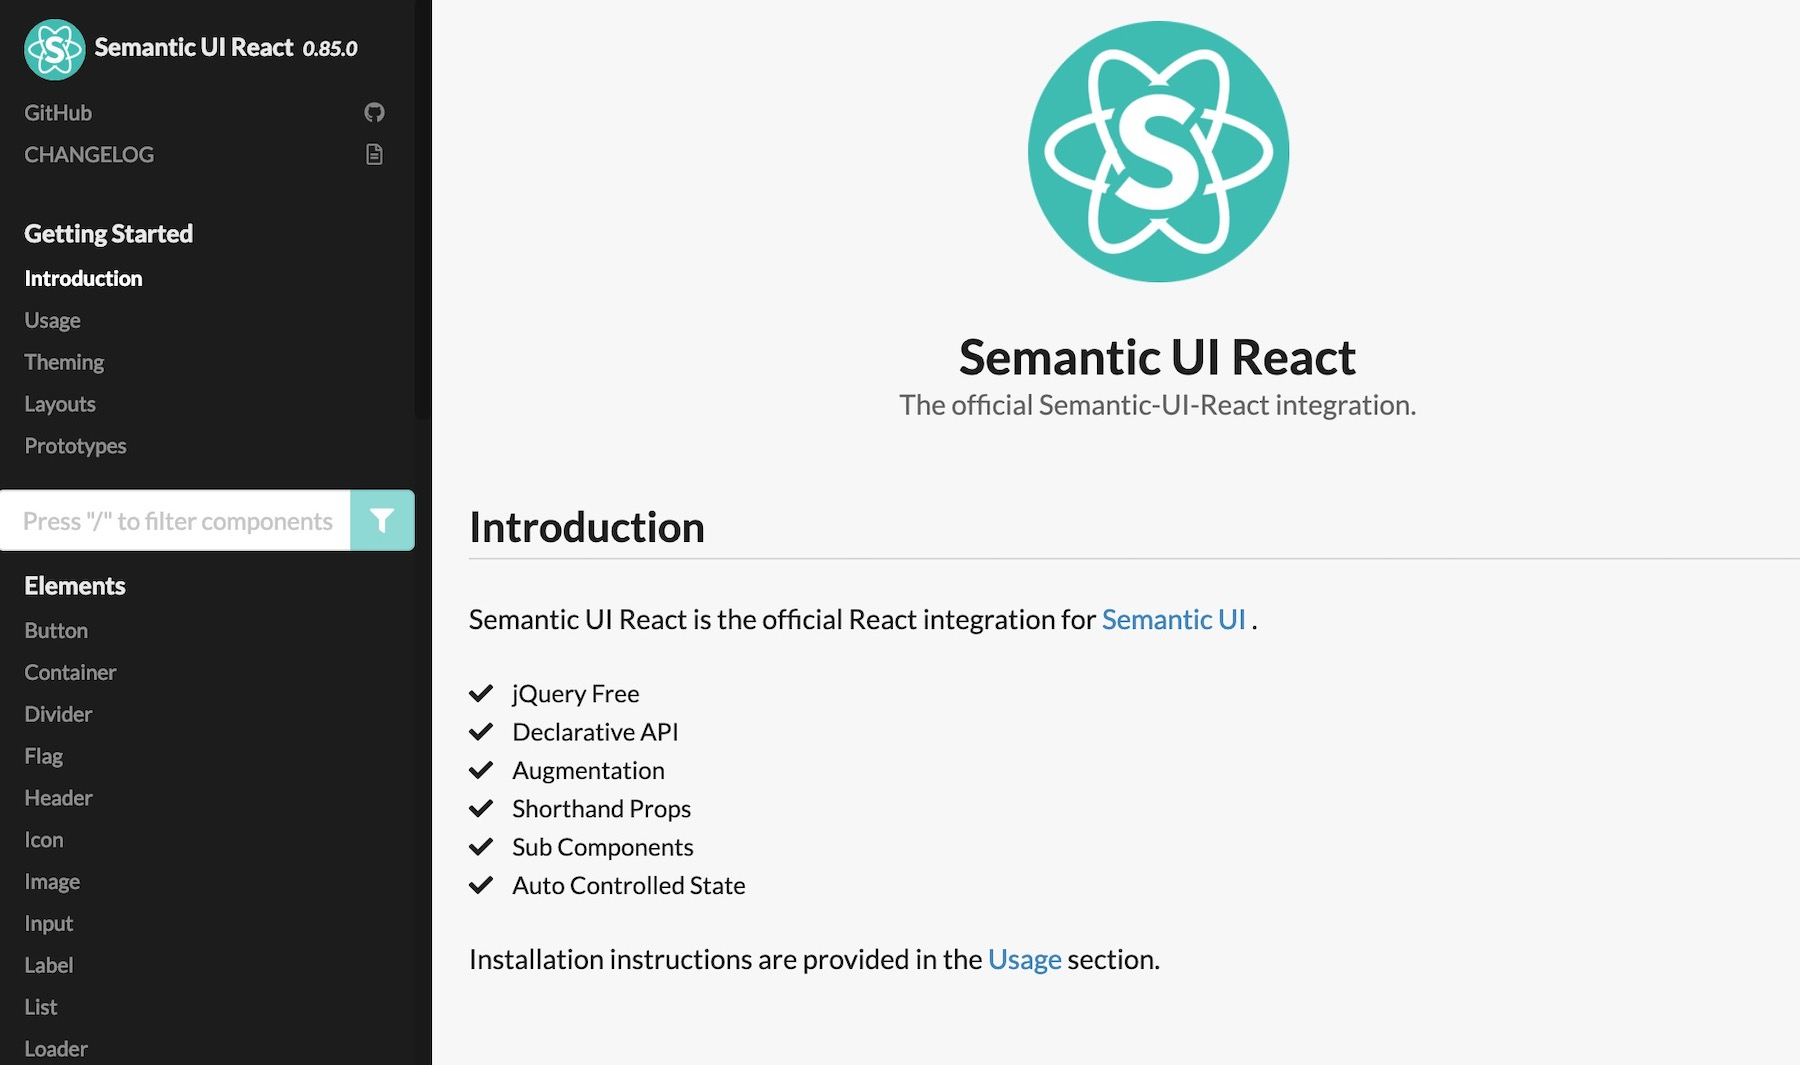 18 Best React UI Component Libraries / Frameworks for 2019